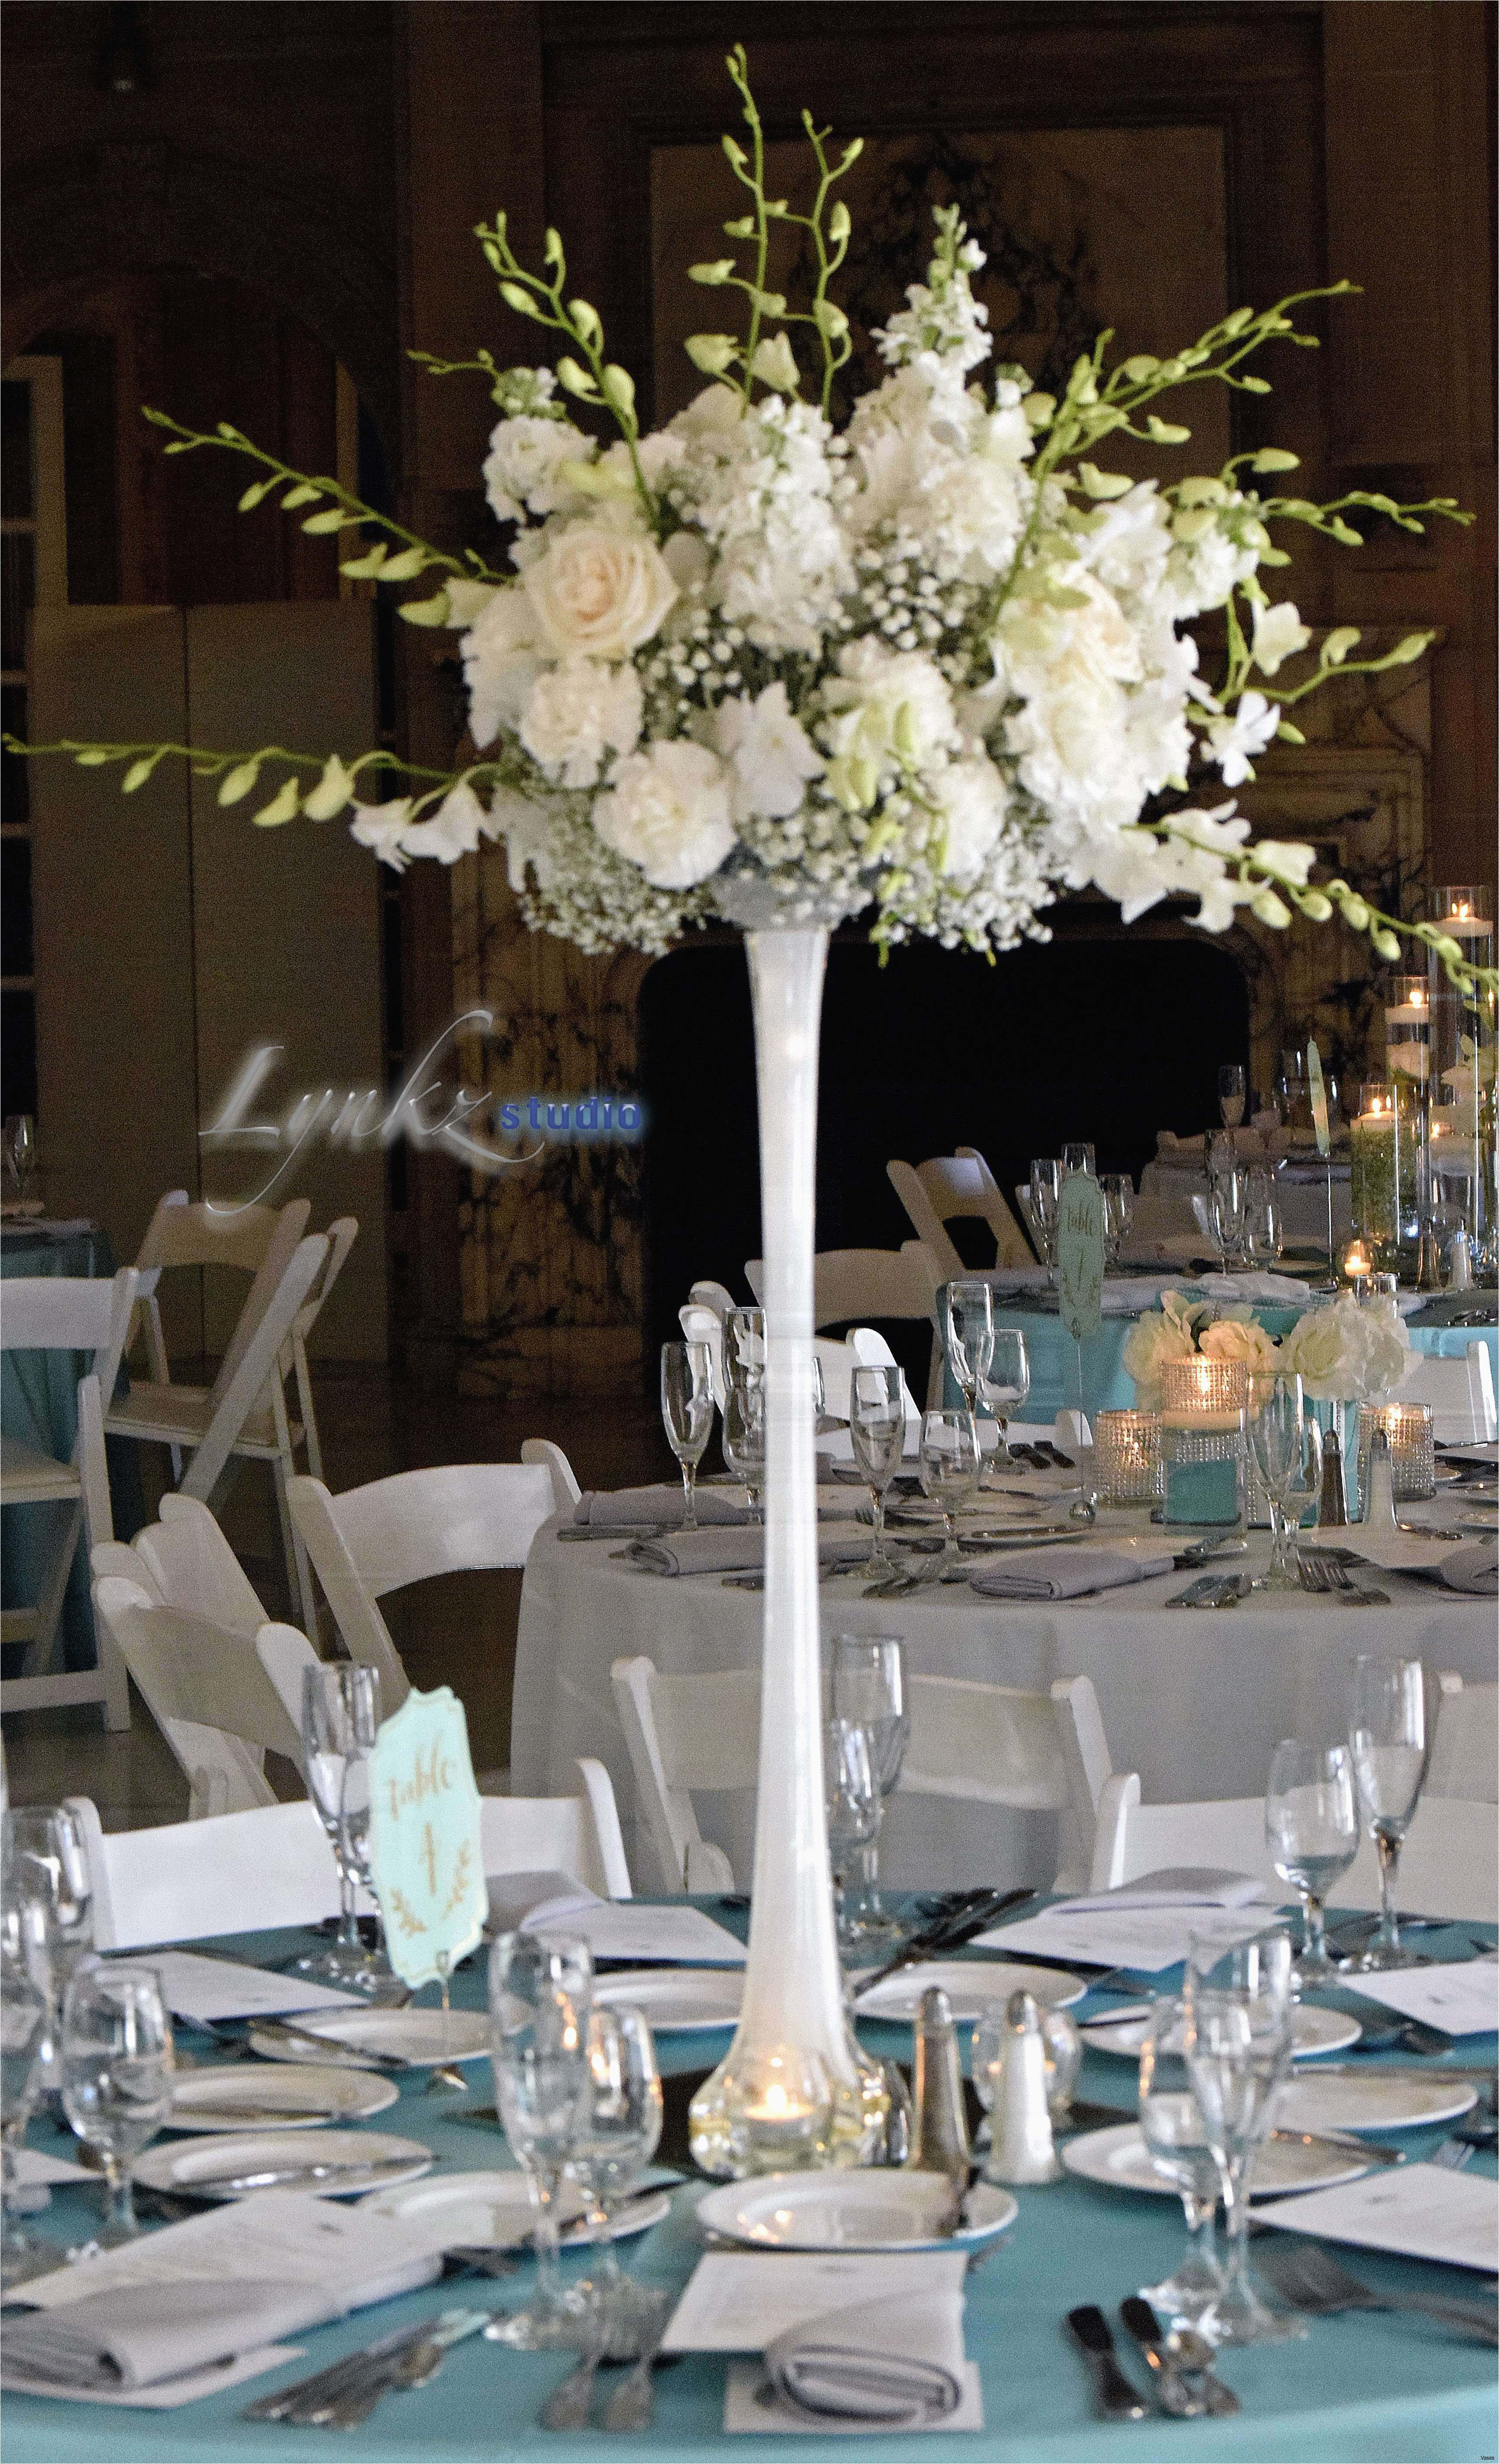 cheap large glass vases of room decor ideas with lights luxury vases eiffel tower vase lights with room decor ideas with lights idea vases eiffel tower vase lights hydrangea with grass vasei